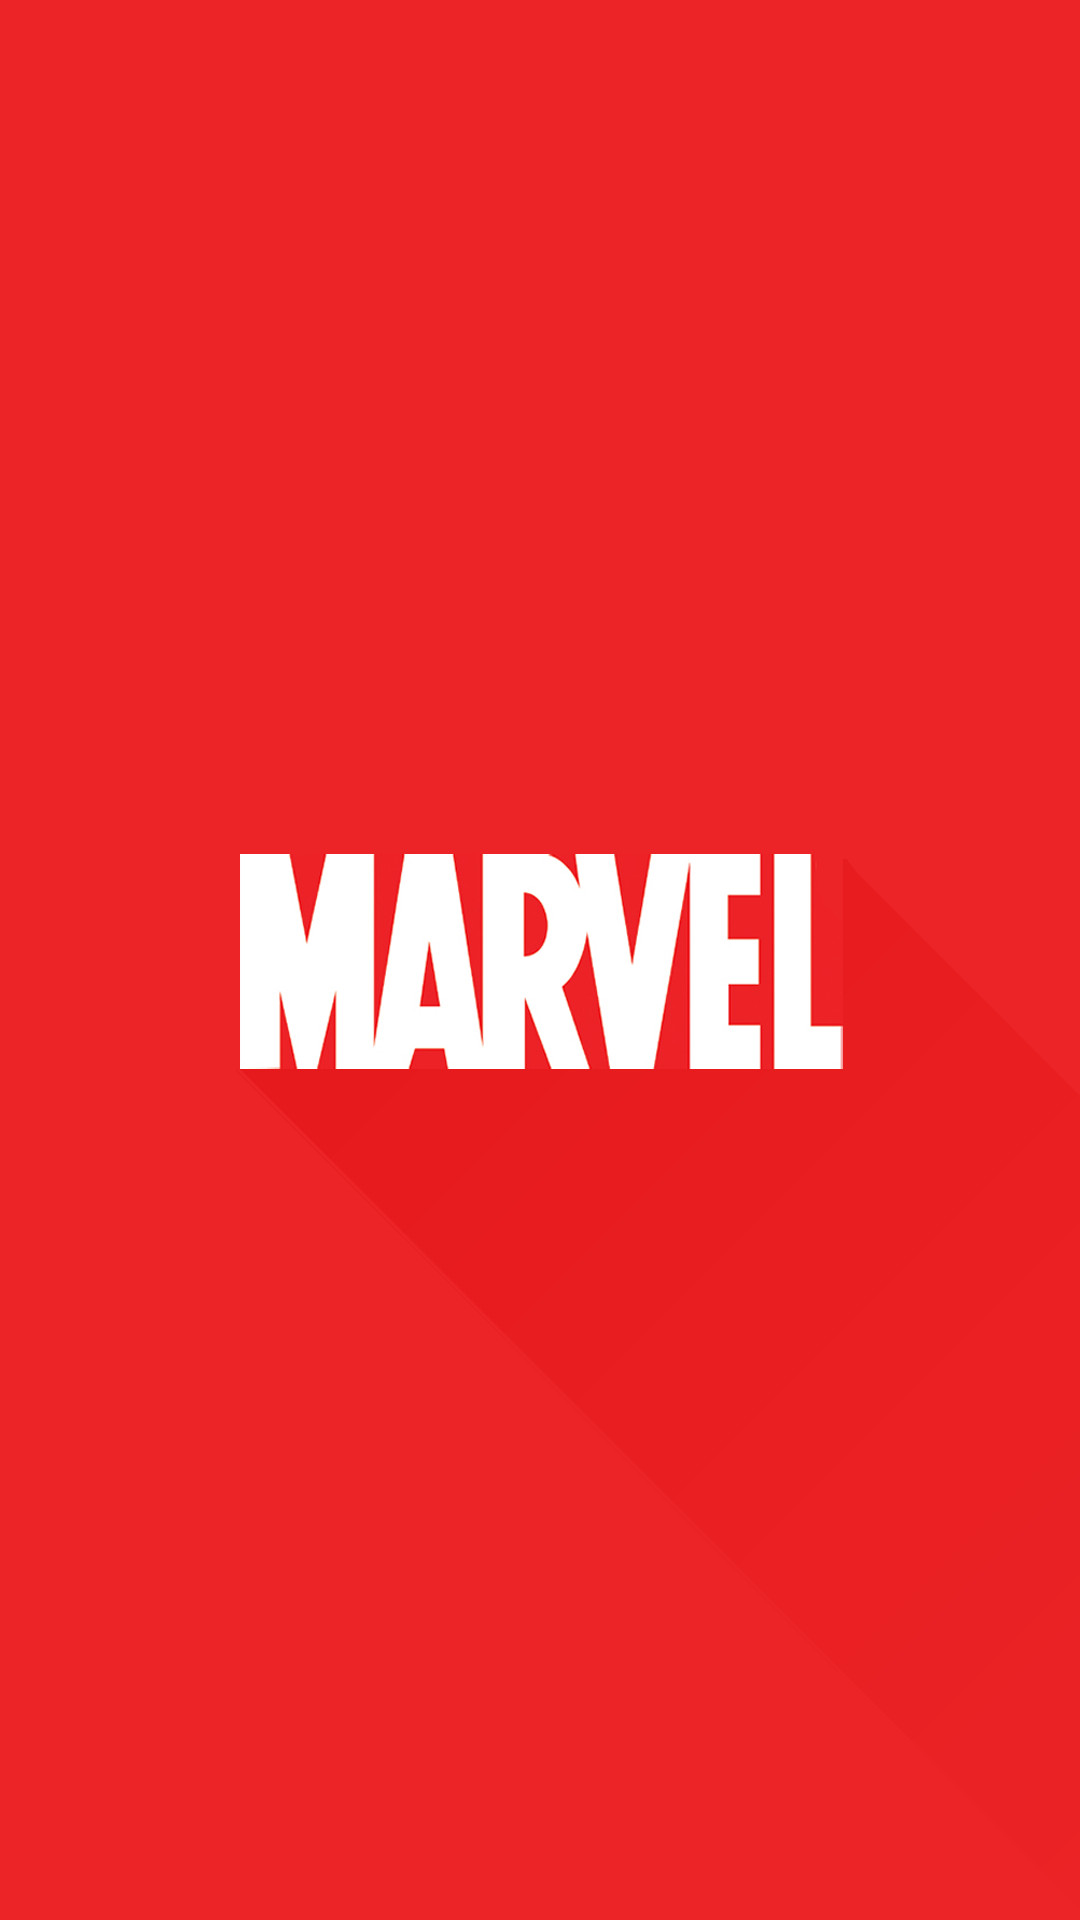 Amazing Wallpaper Marvel Android Phone - 477757  Picture_782213.jpg